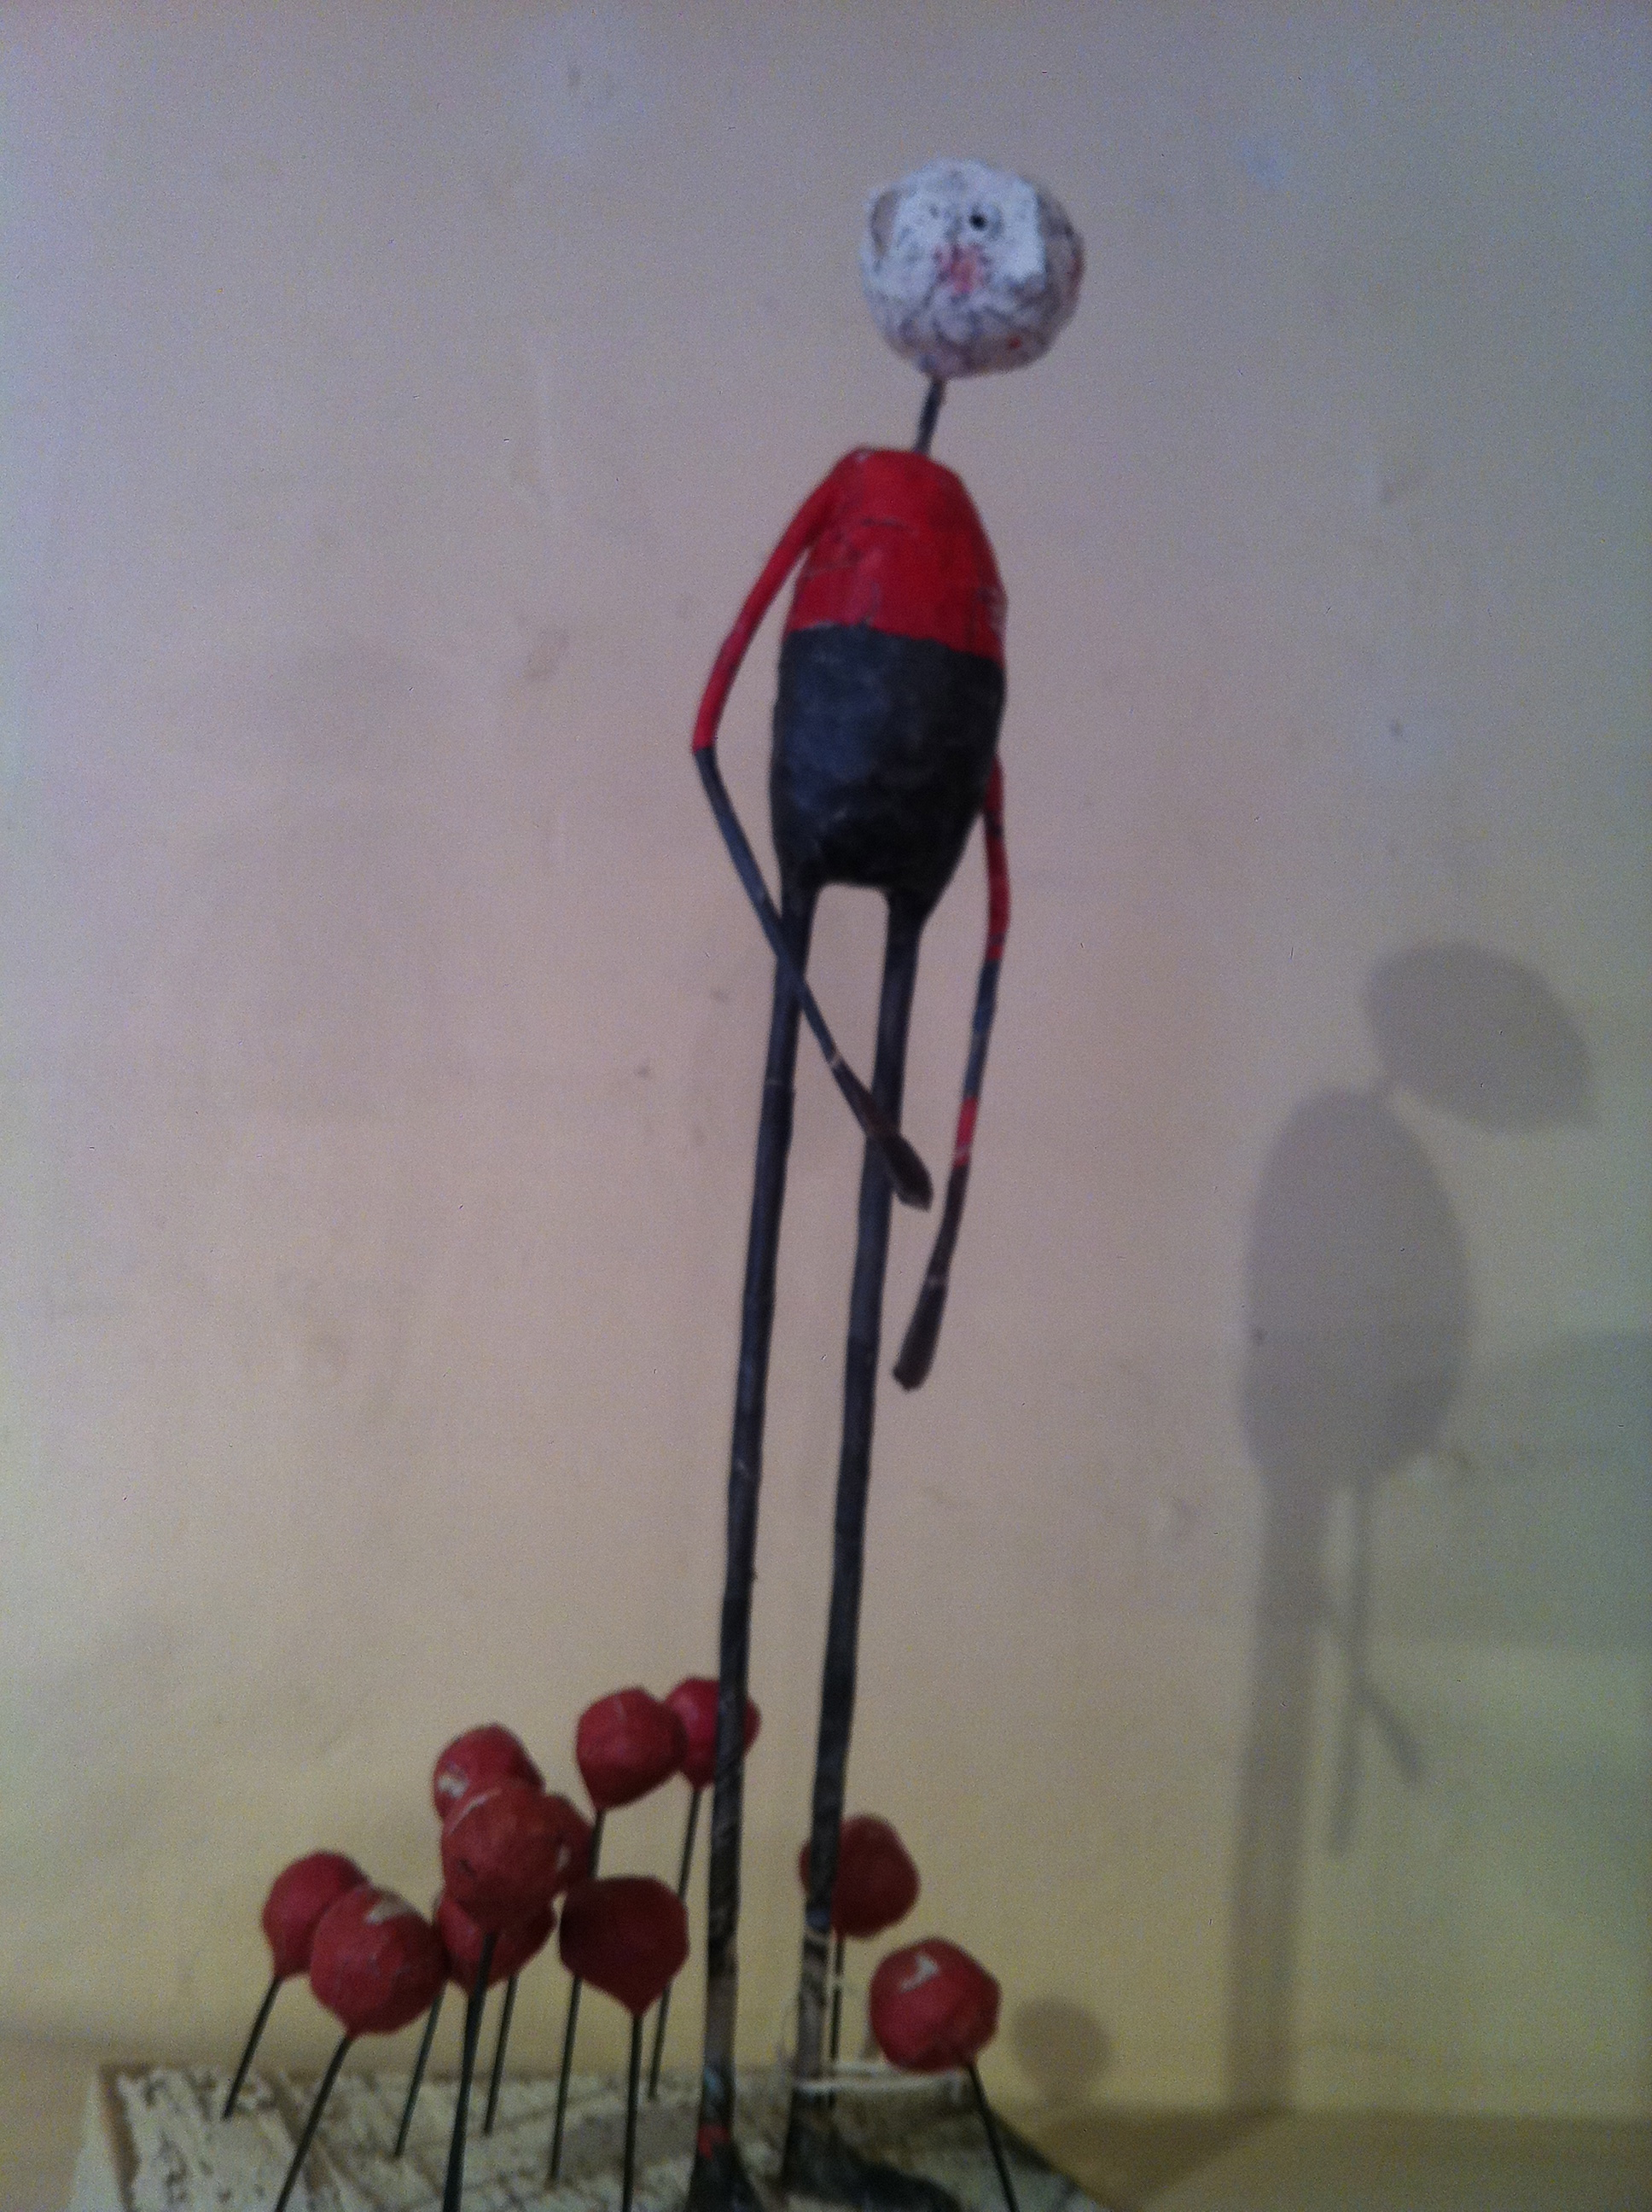 meet the maker jane strawbridge heart gallery blog love the shadows jane s pieces create on our walls